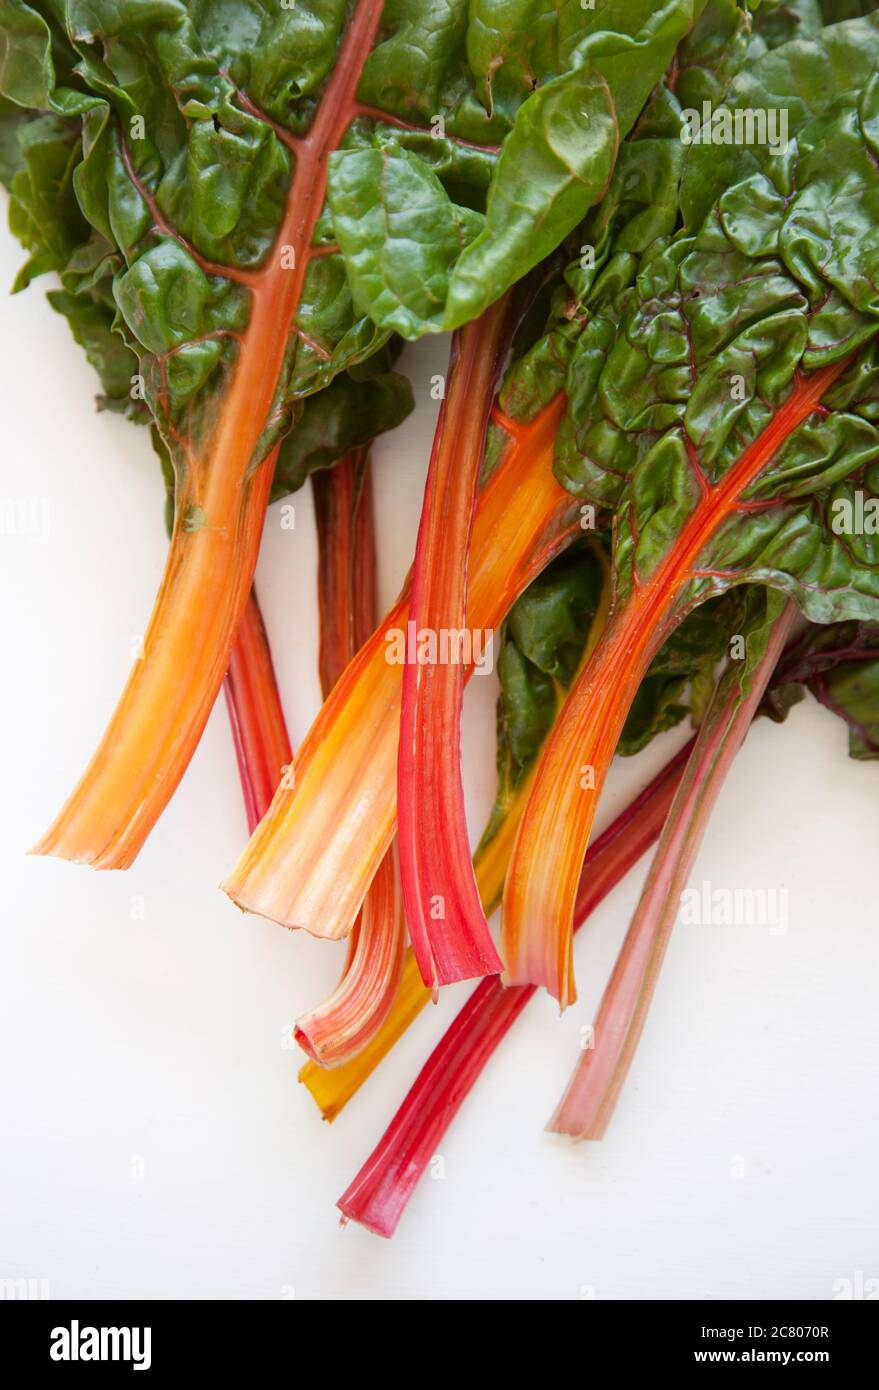 Leaves Of Rainbow Chard On A White Ground Stock Photo Alamy